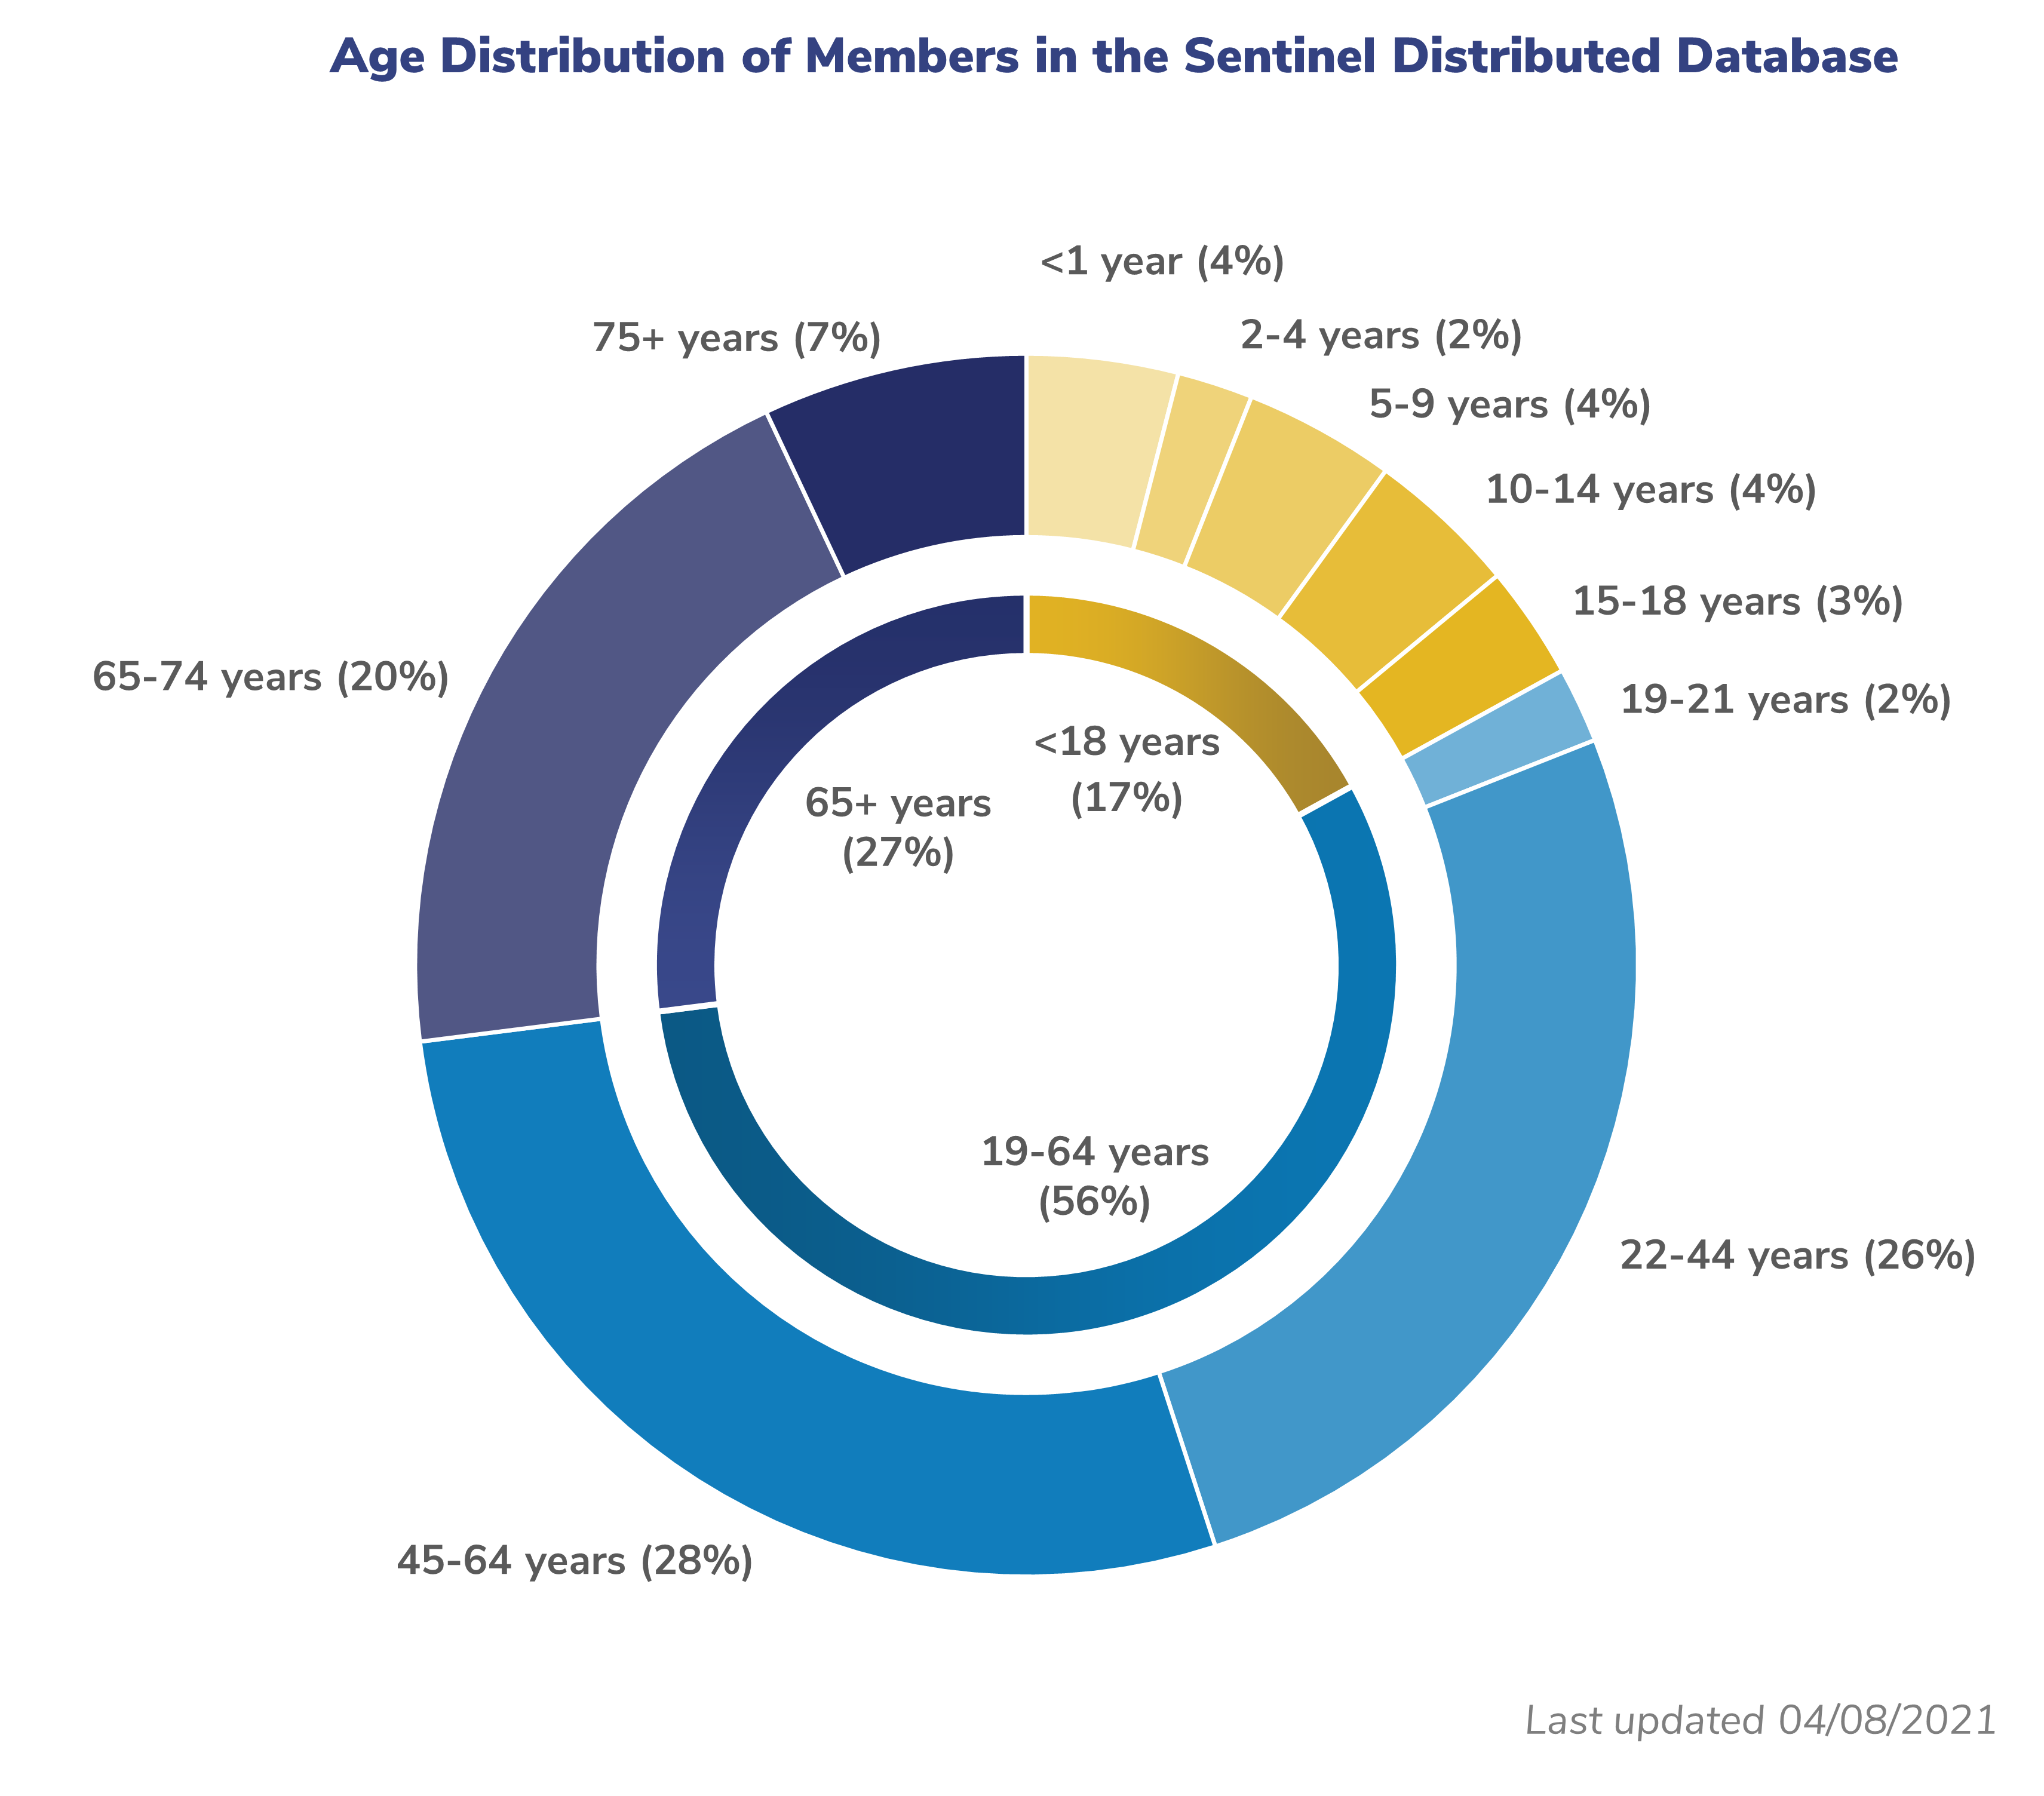 Age distribution graph for the distributed database